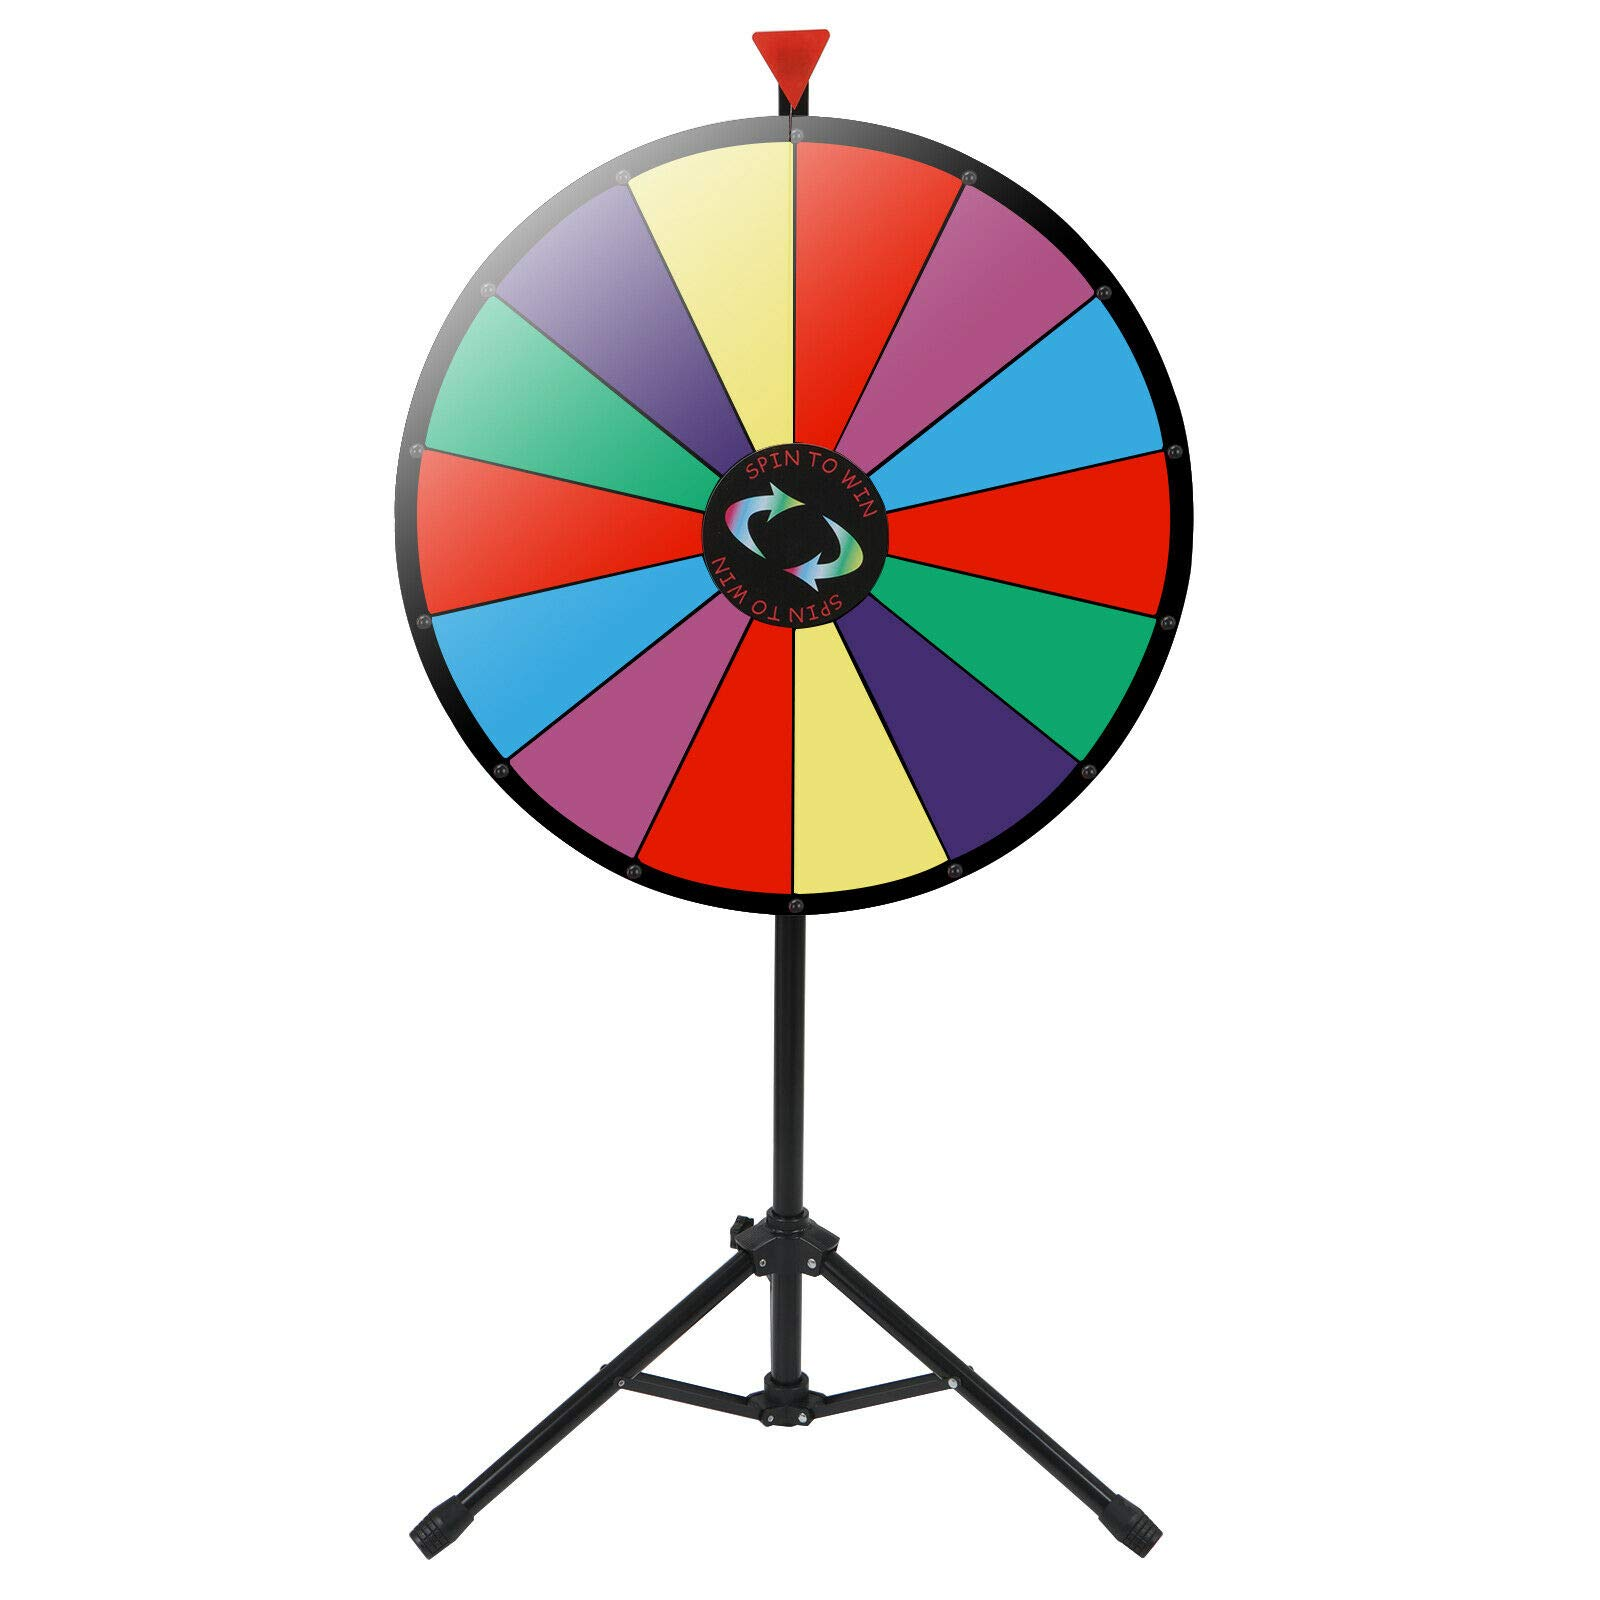 24'' Prize Wheel Metal Tripod Adjustable Floor Stand Editable Reusable Dry Erase Color Portable 14 Slot Perfect For Trade-shows Promotion Activities Carnivals Annual Meetings Holiday Activities Parties by Auténtico (Image #2)